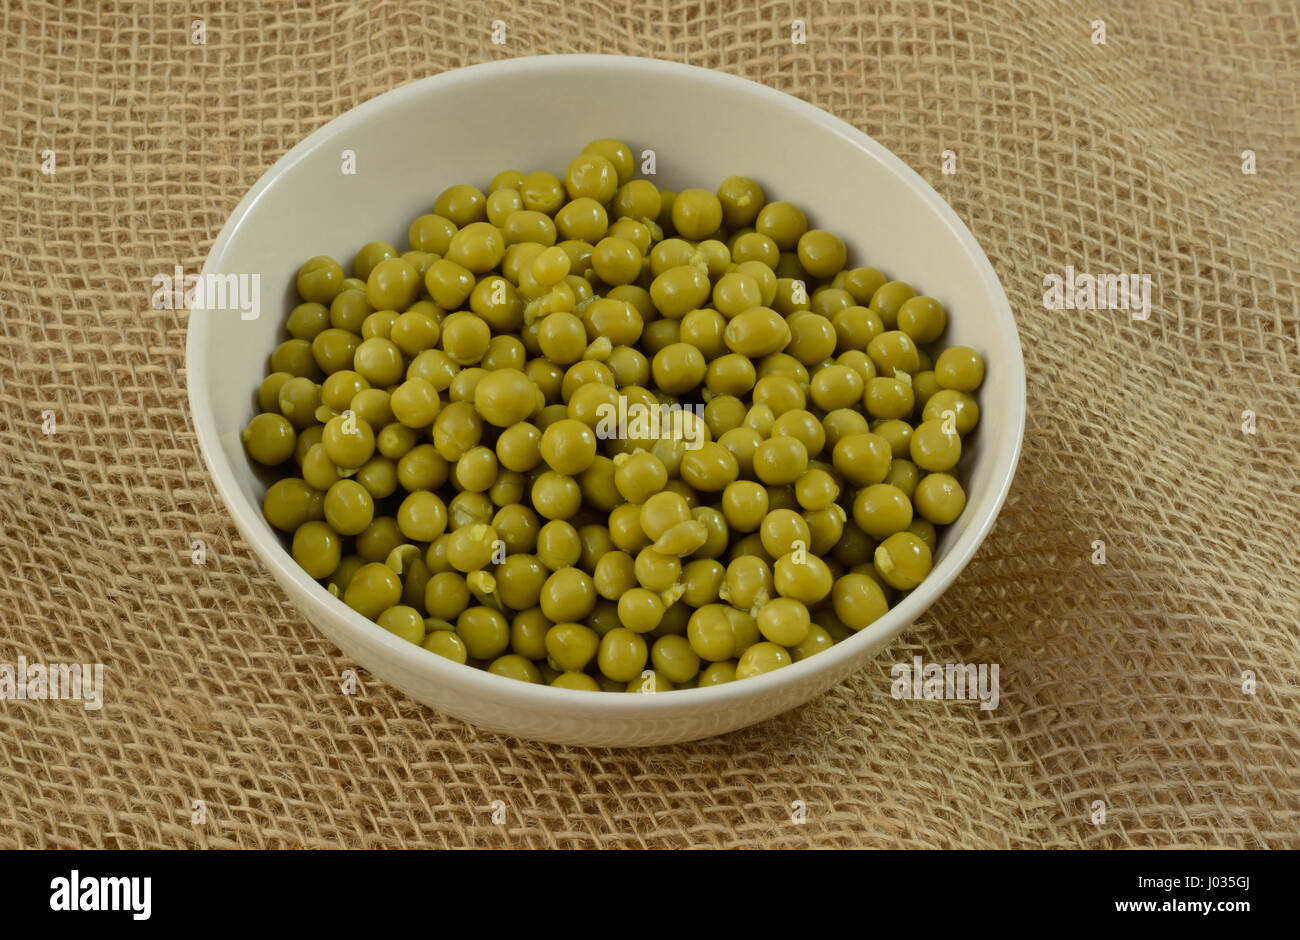 Canned low salt sweet peas in white bowl on burlap - Stock Image